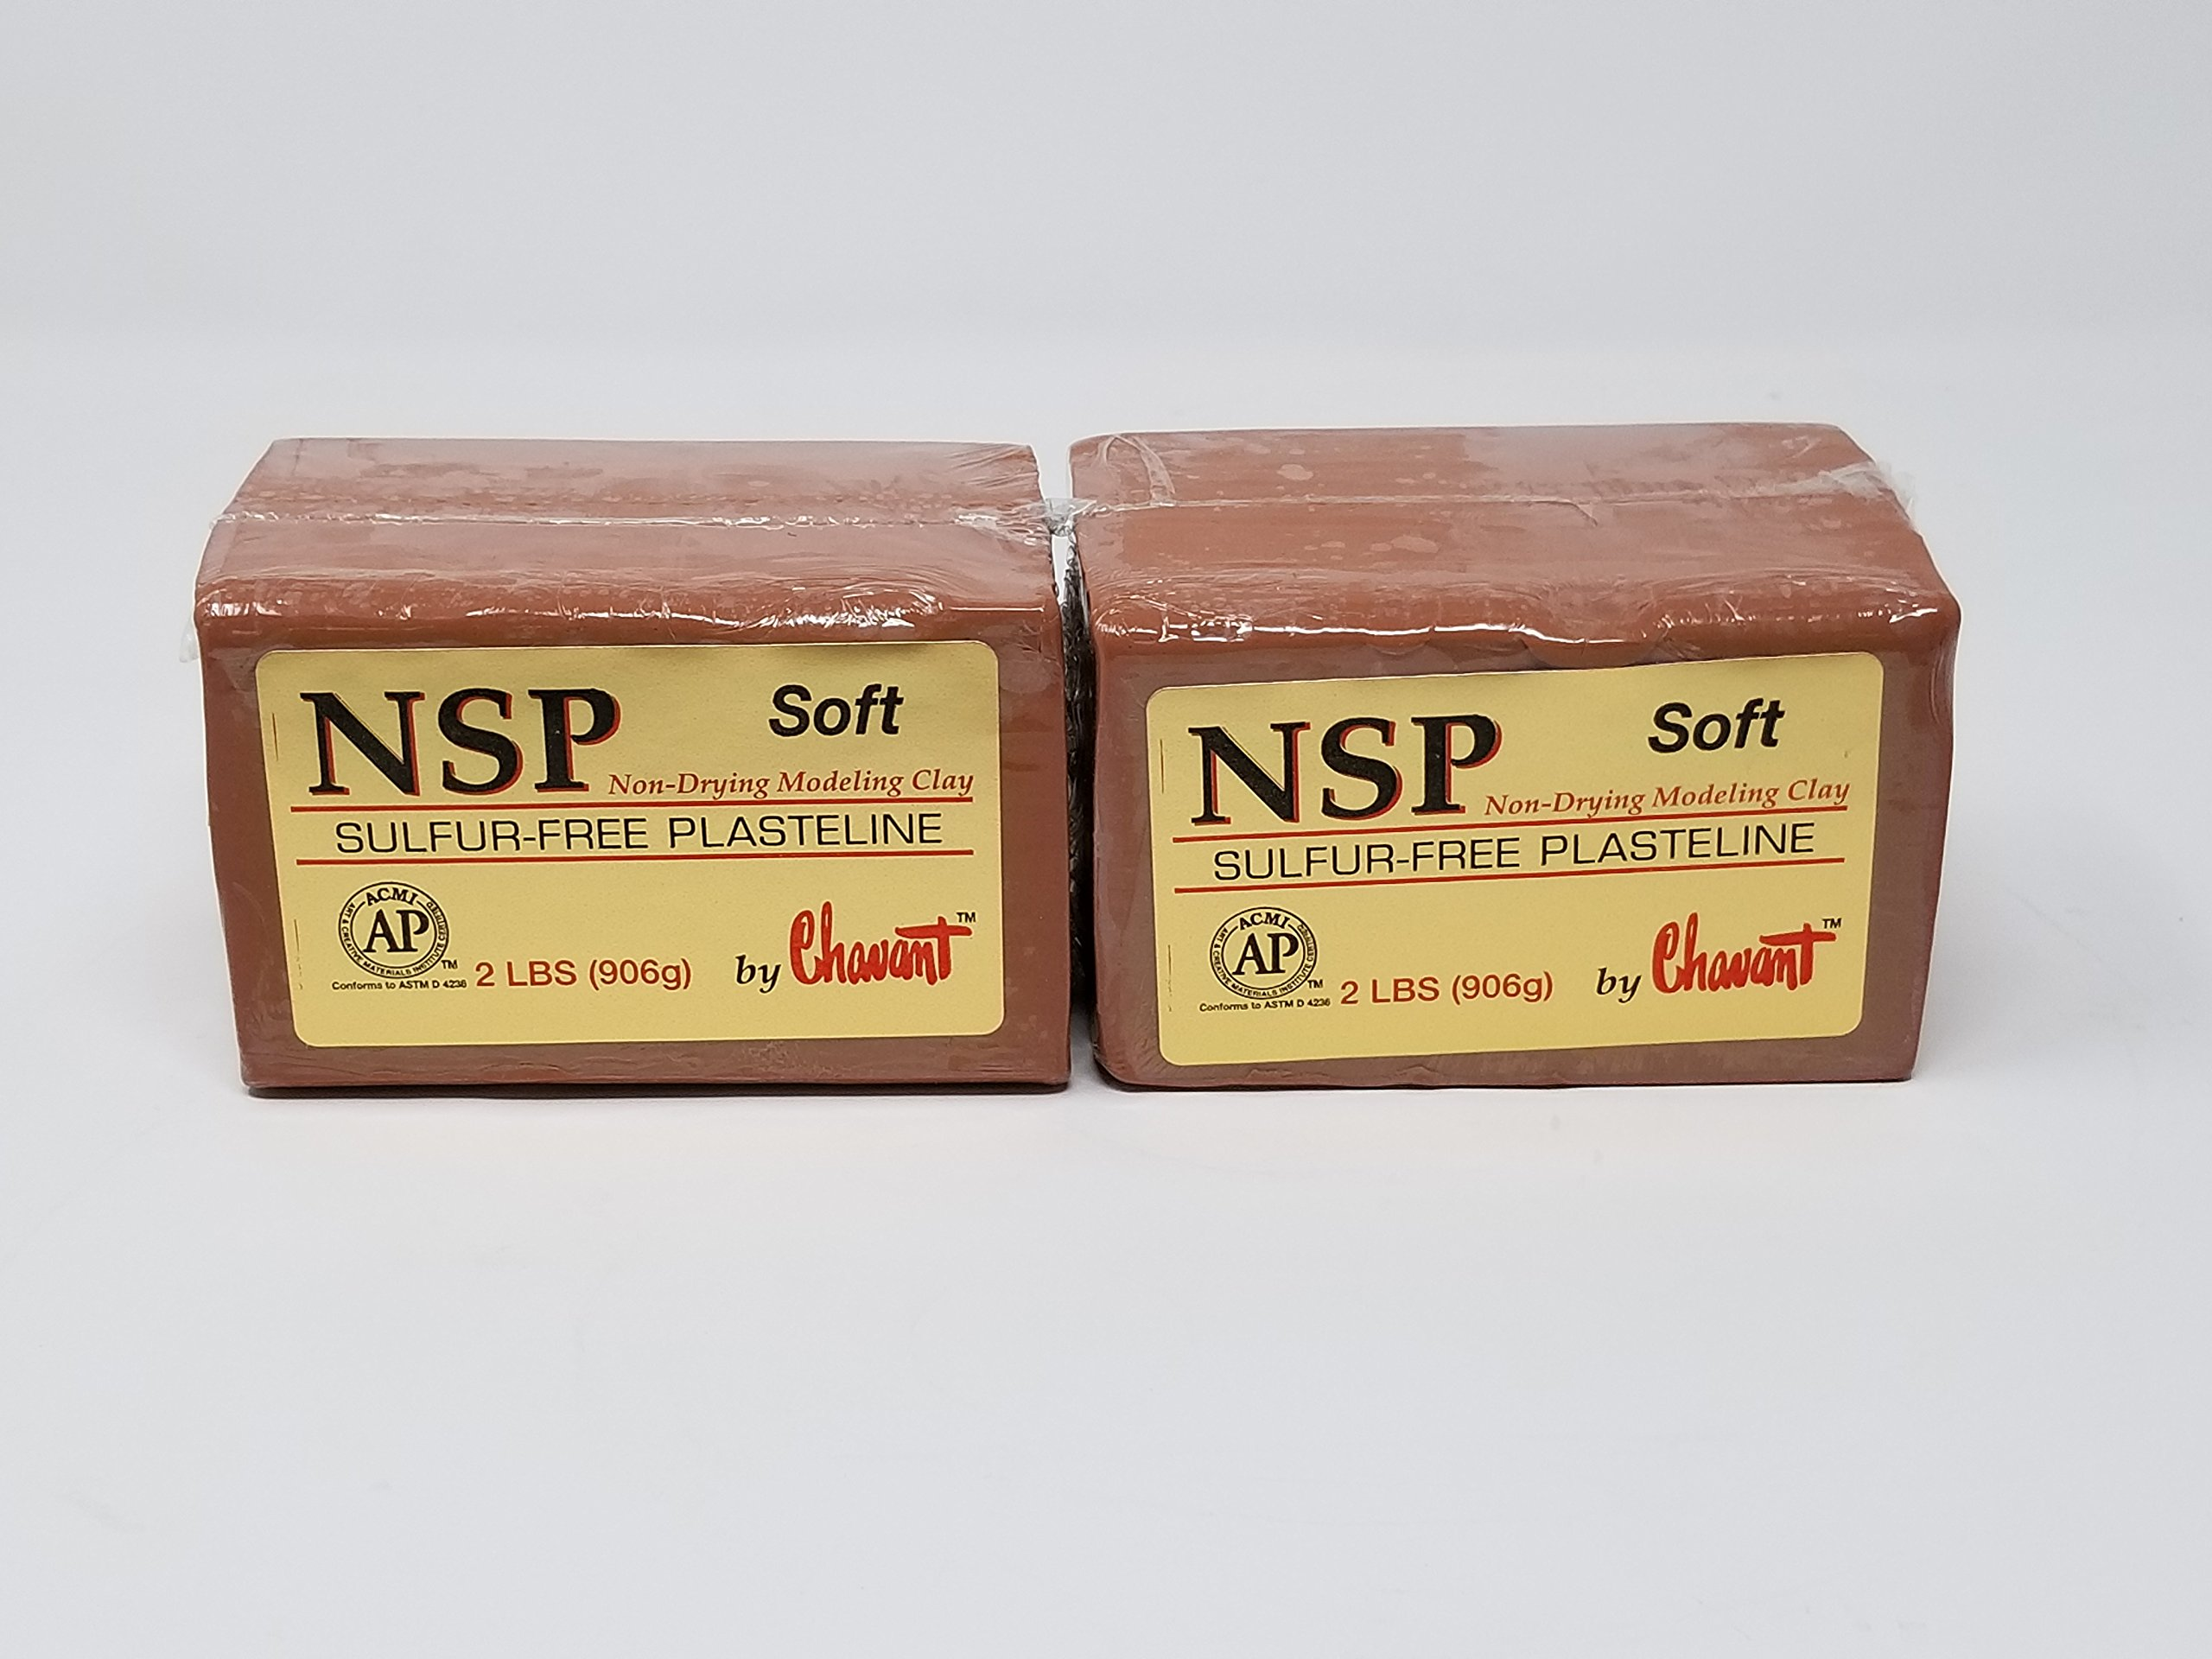 Chavant NSP SOFT 4 Lbs Oil Based Sulfur-Free Sculpting Clay (Brown)